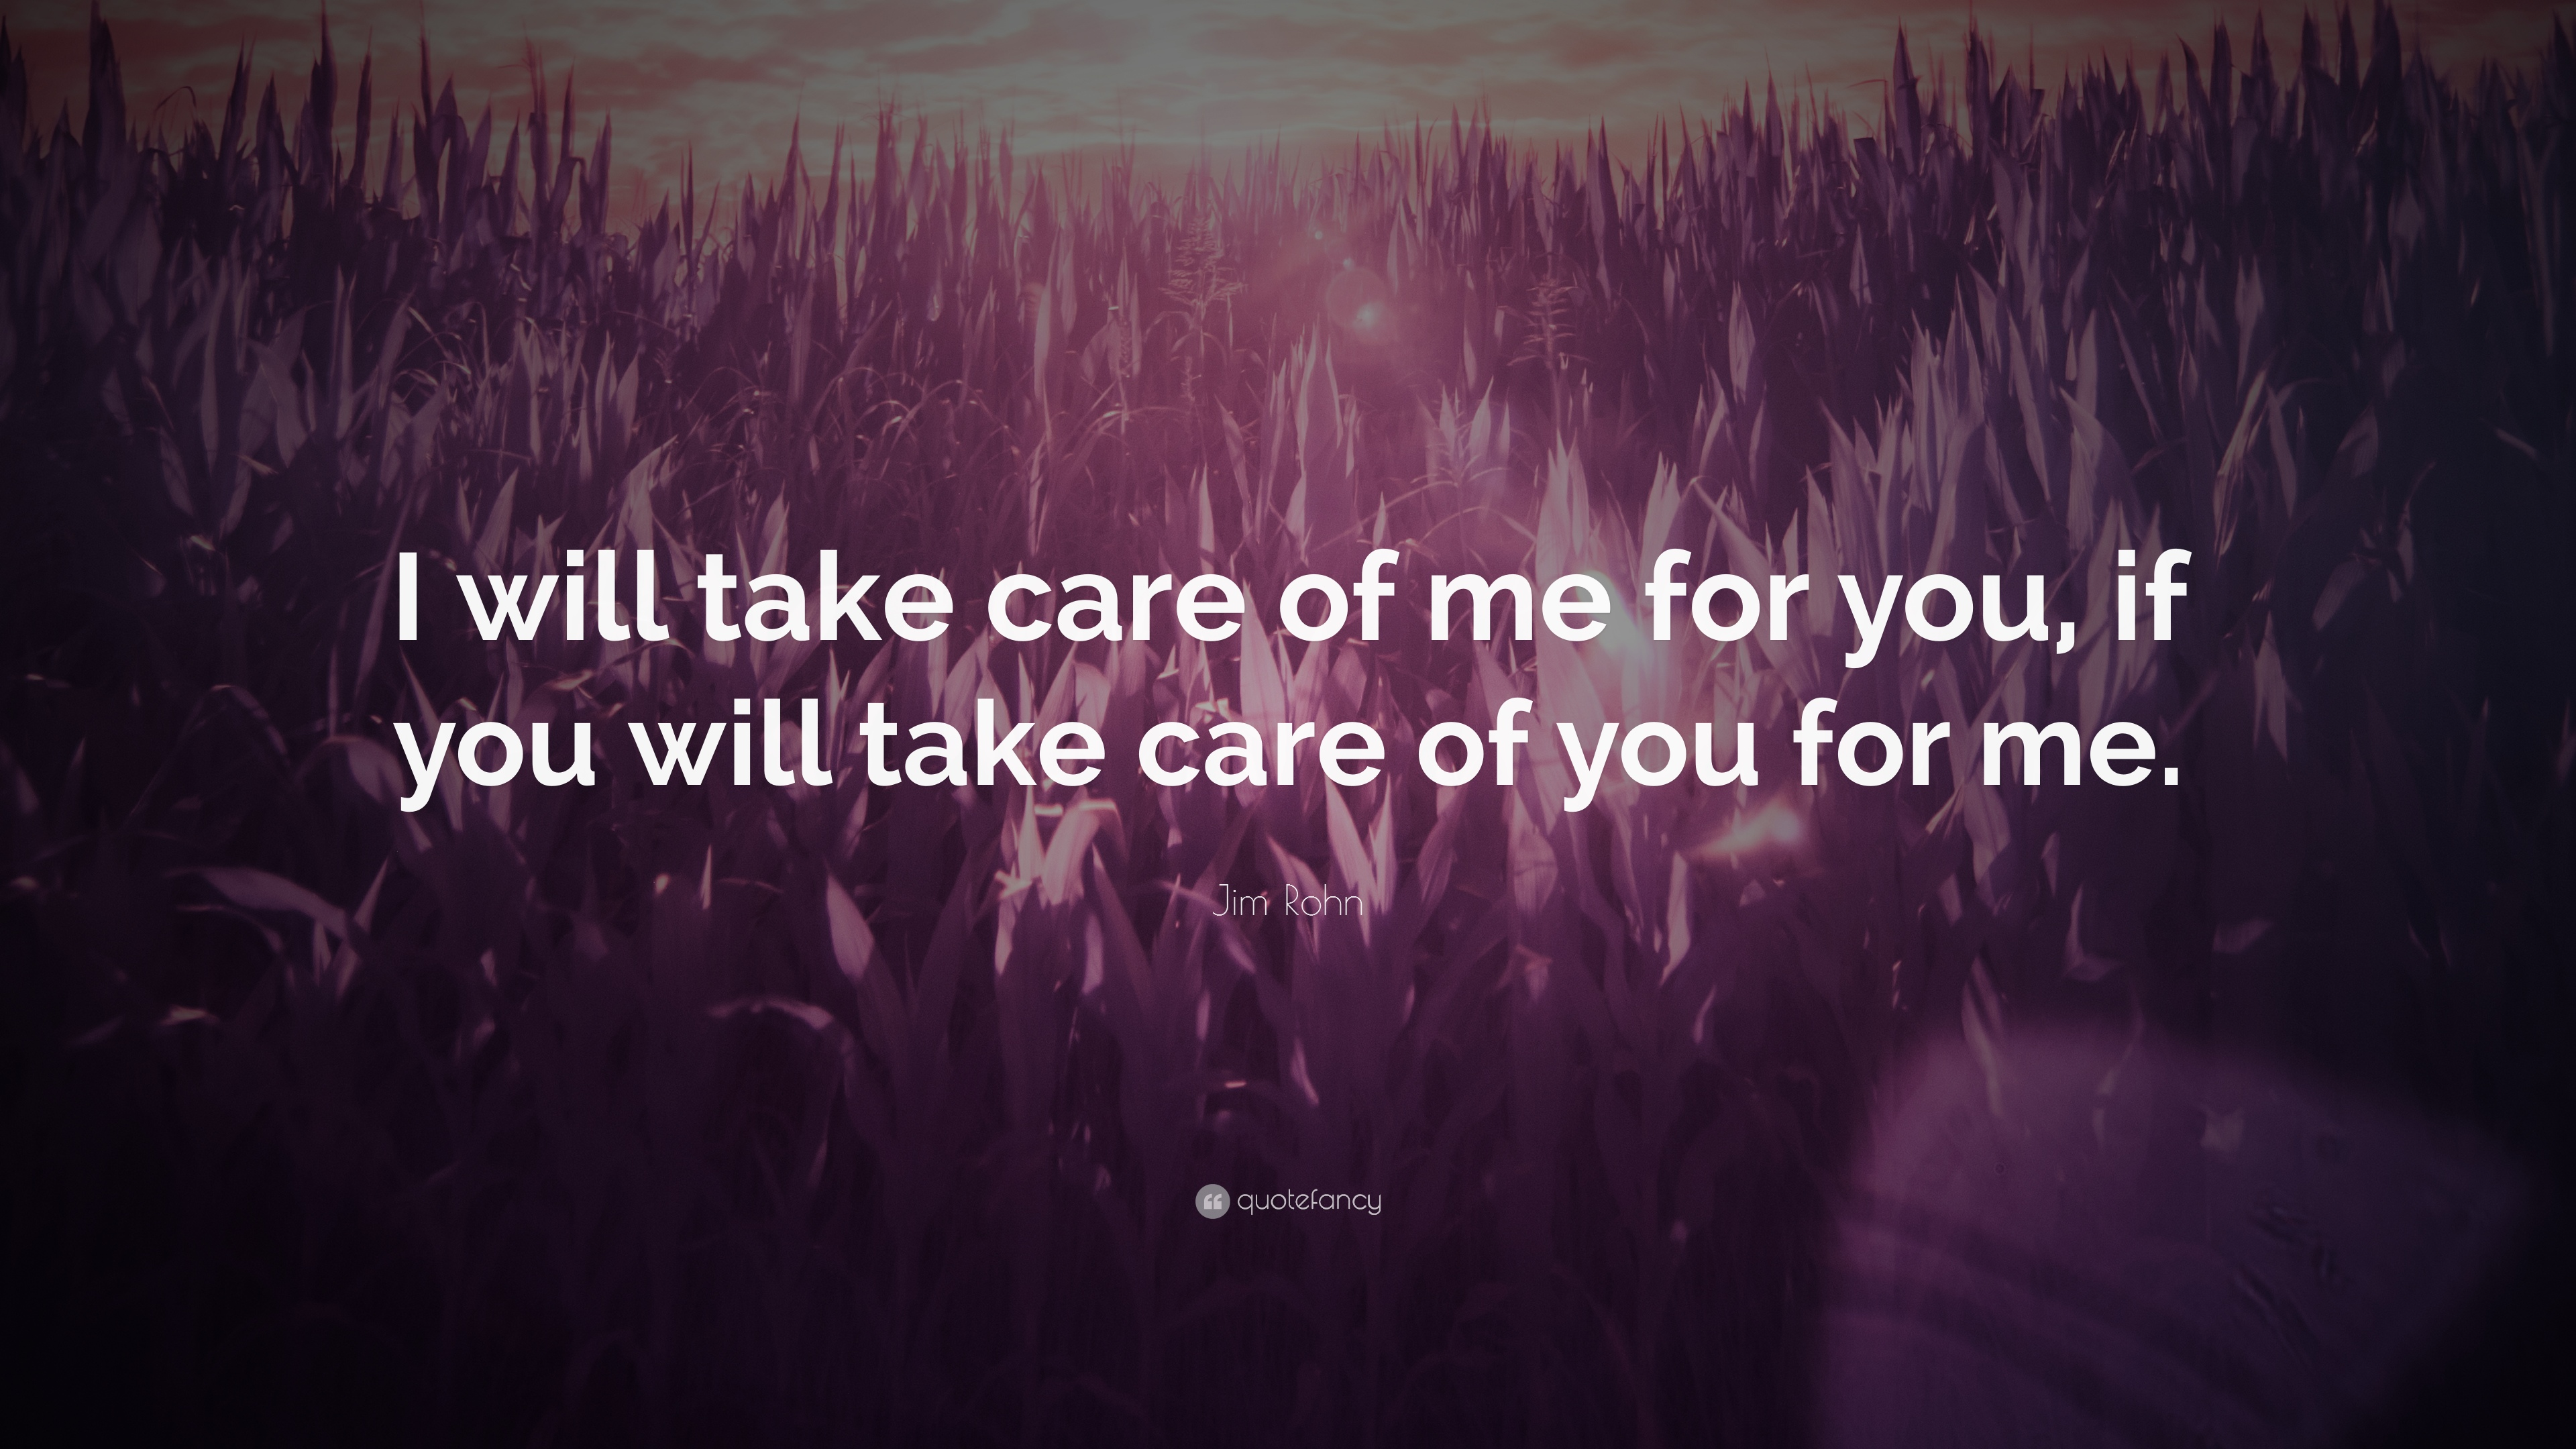 You Me Care Of Newark Care Of Take Take You Atwell